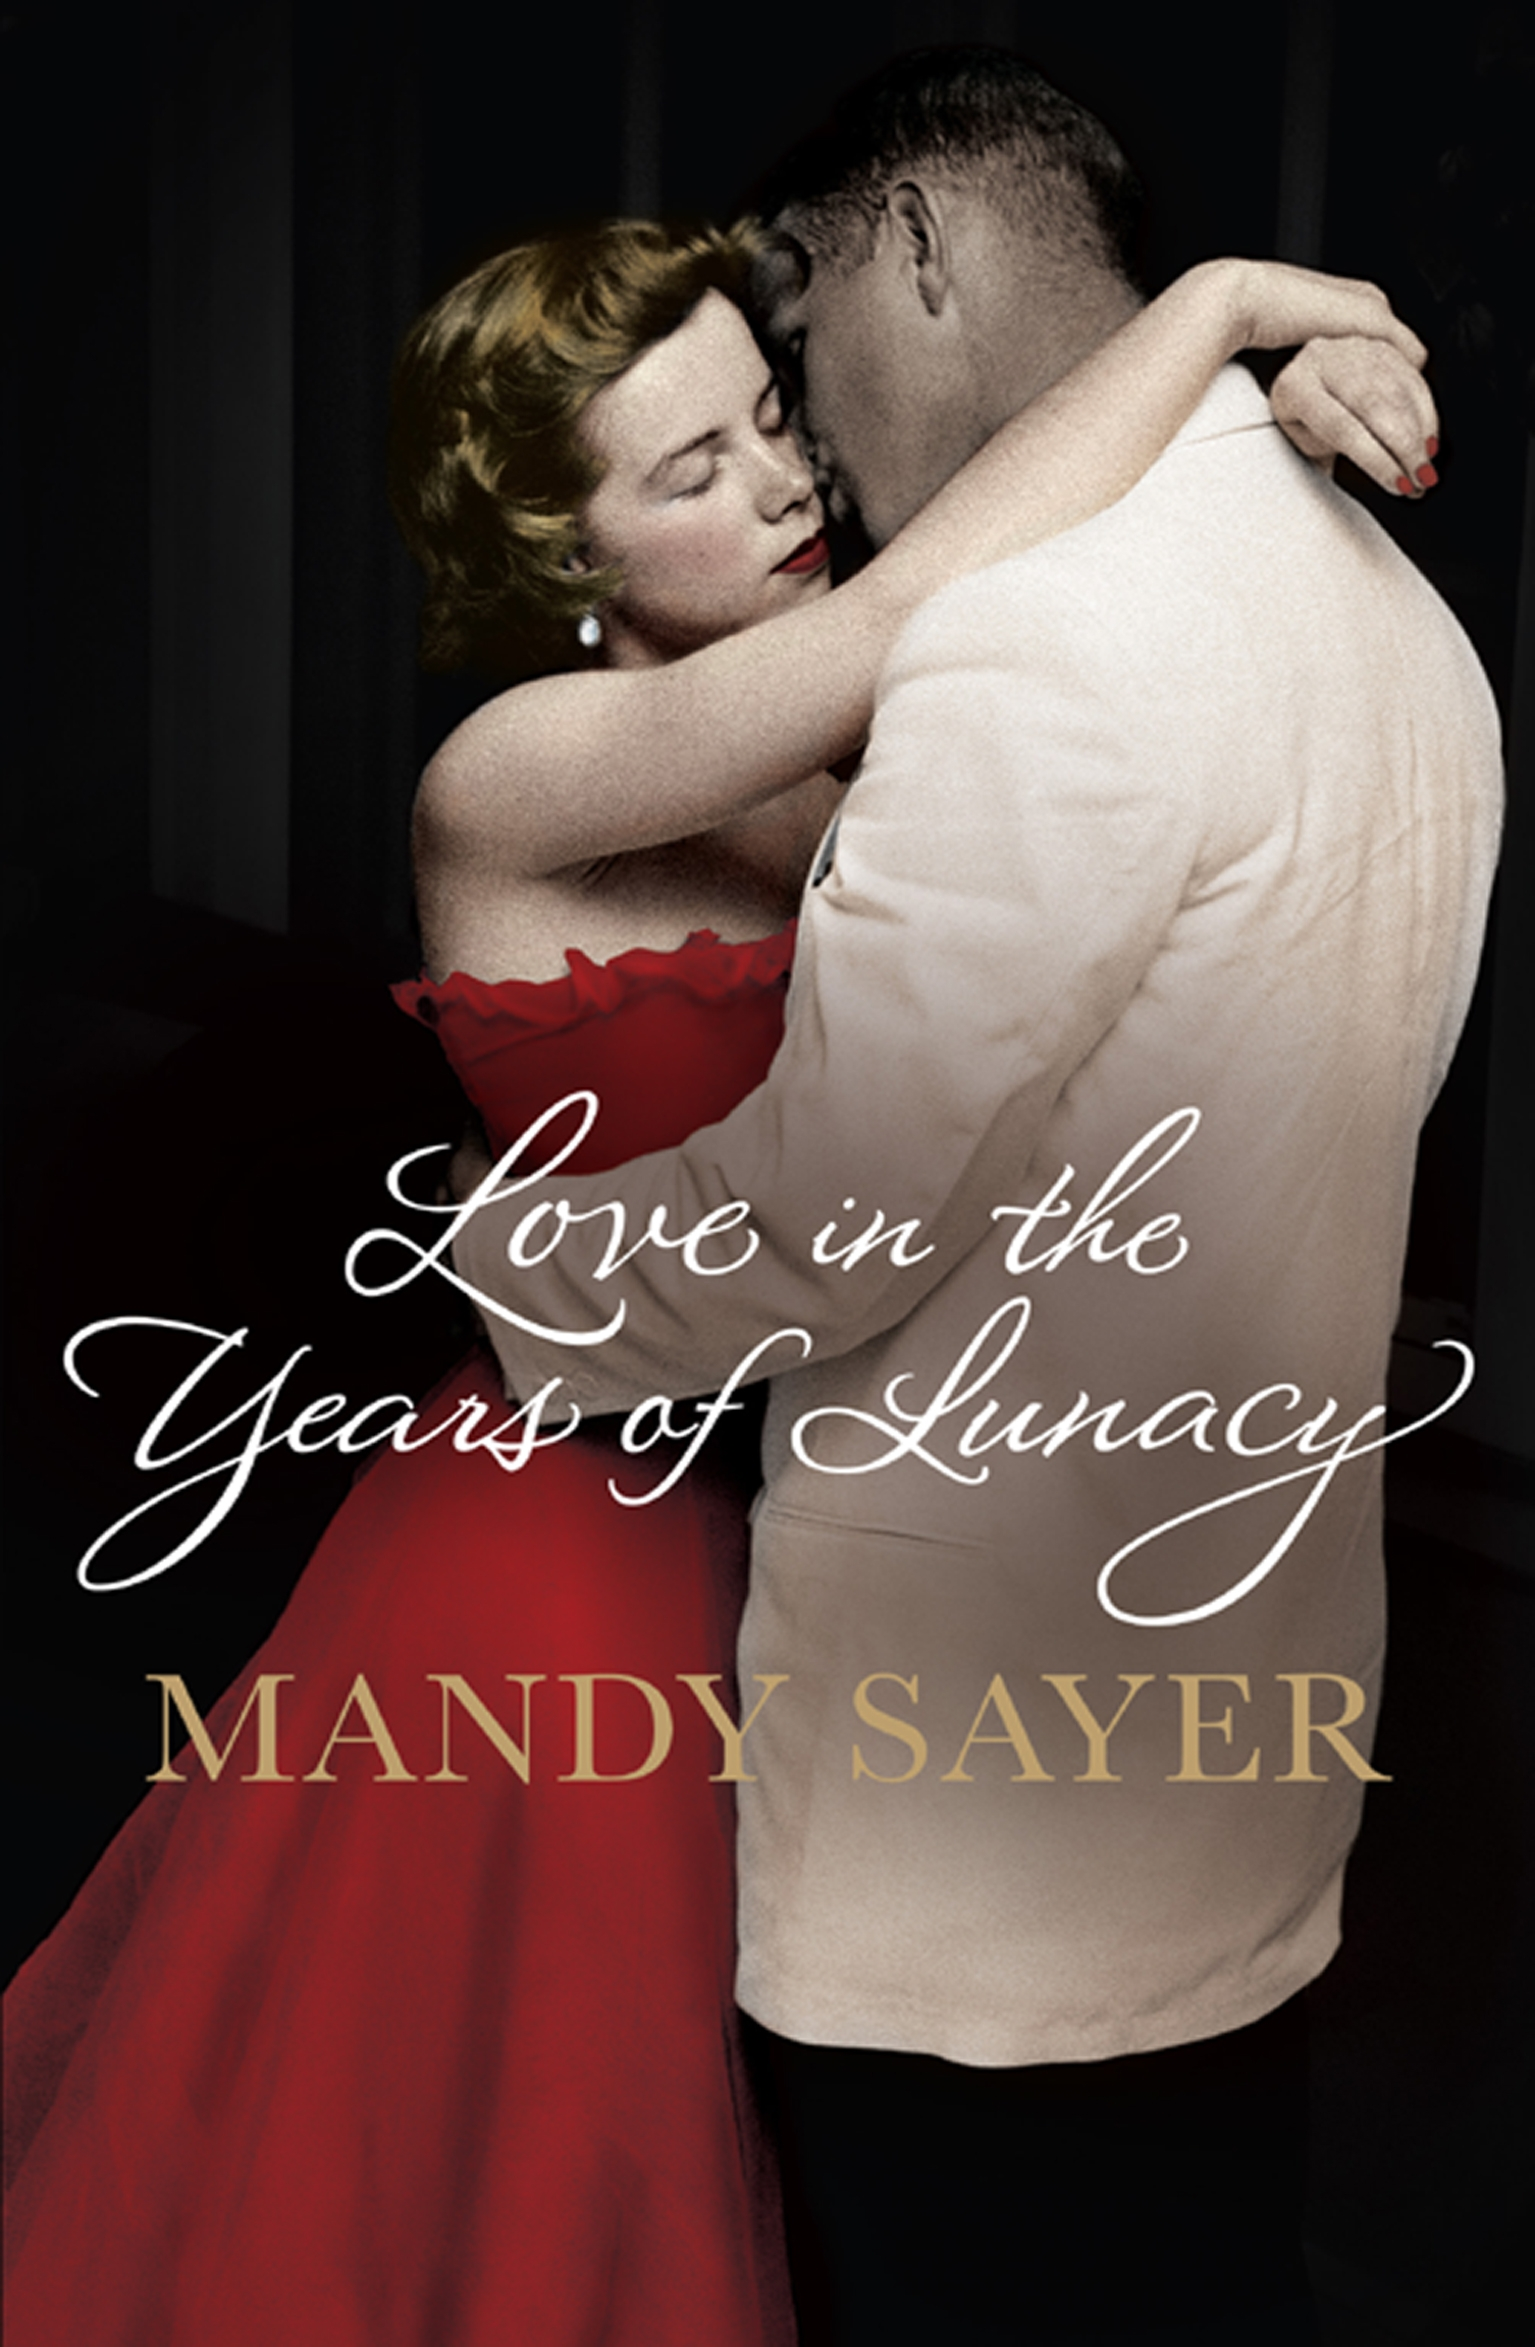 *Love in the Years of Lunacy*, Mandy Sayer, A&U, designed by Emily O'Neill.